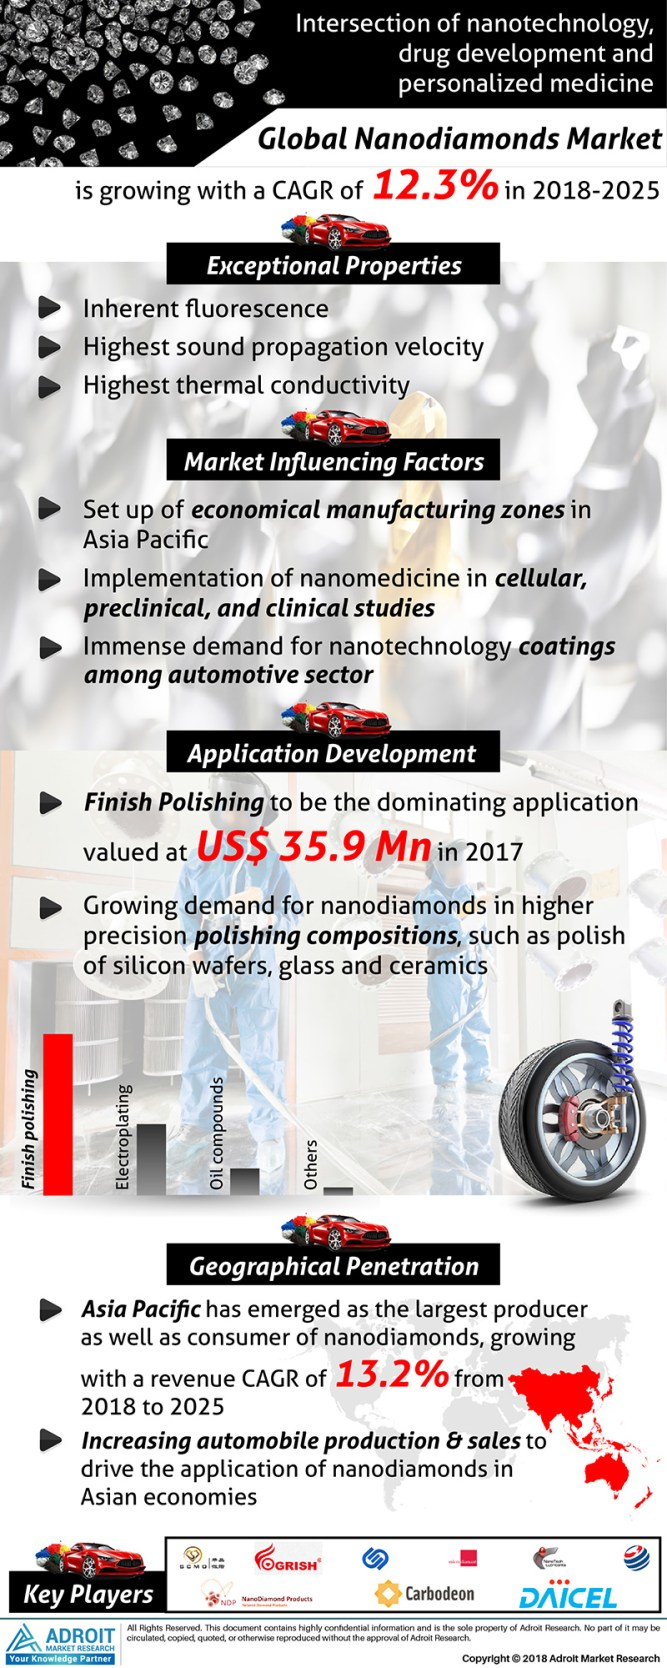 Nanodiamonds Market Overview by Application, Manufacturers in Globe, Specification of Market Trends, Demand, Business Opportunities, Future & Regional Outlook by 2019-2025 1